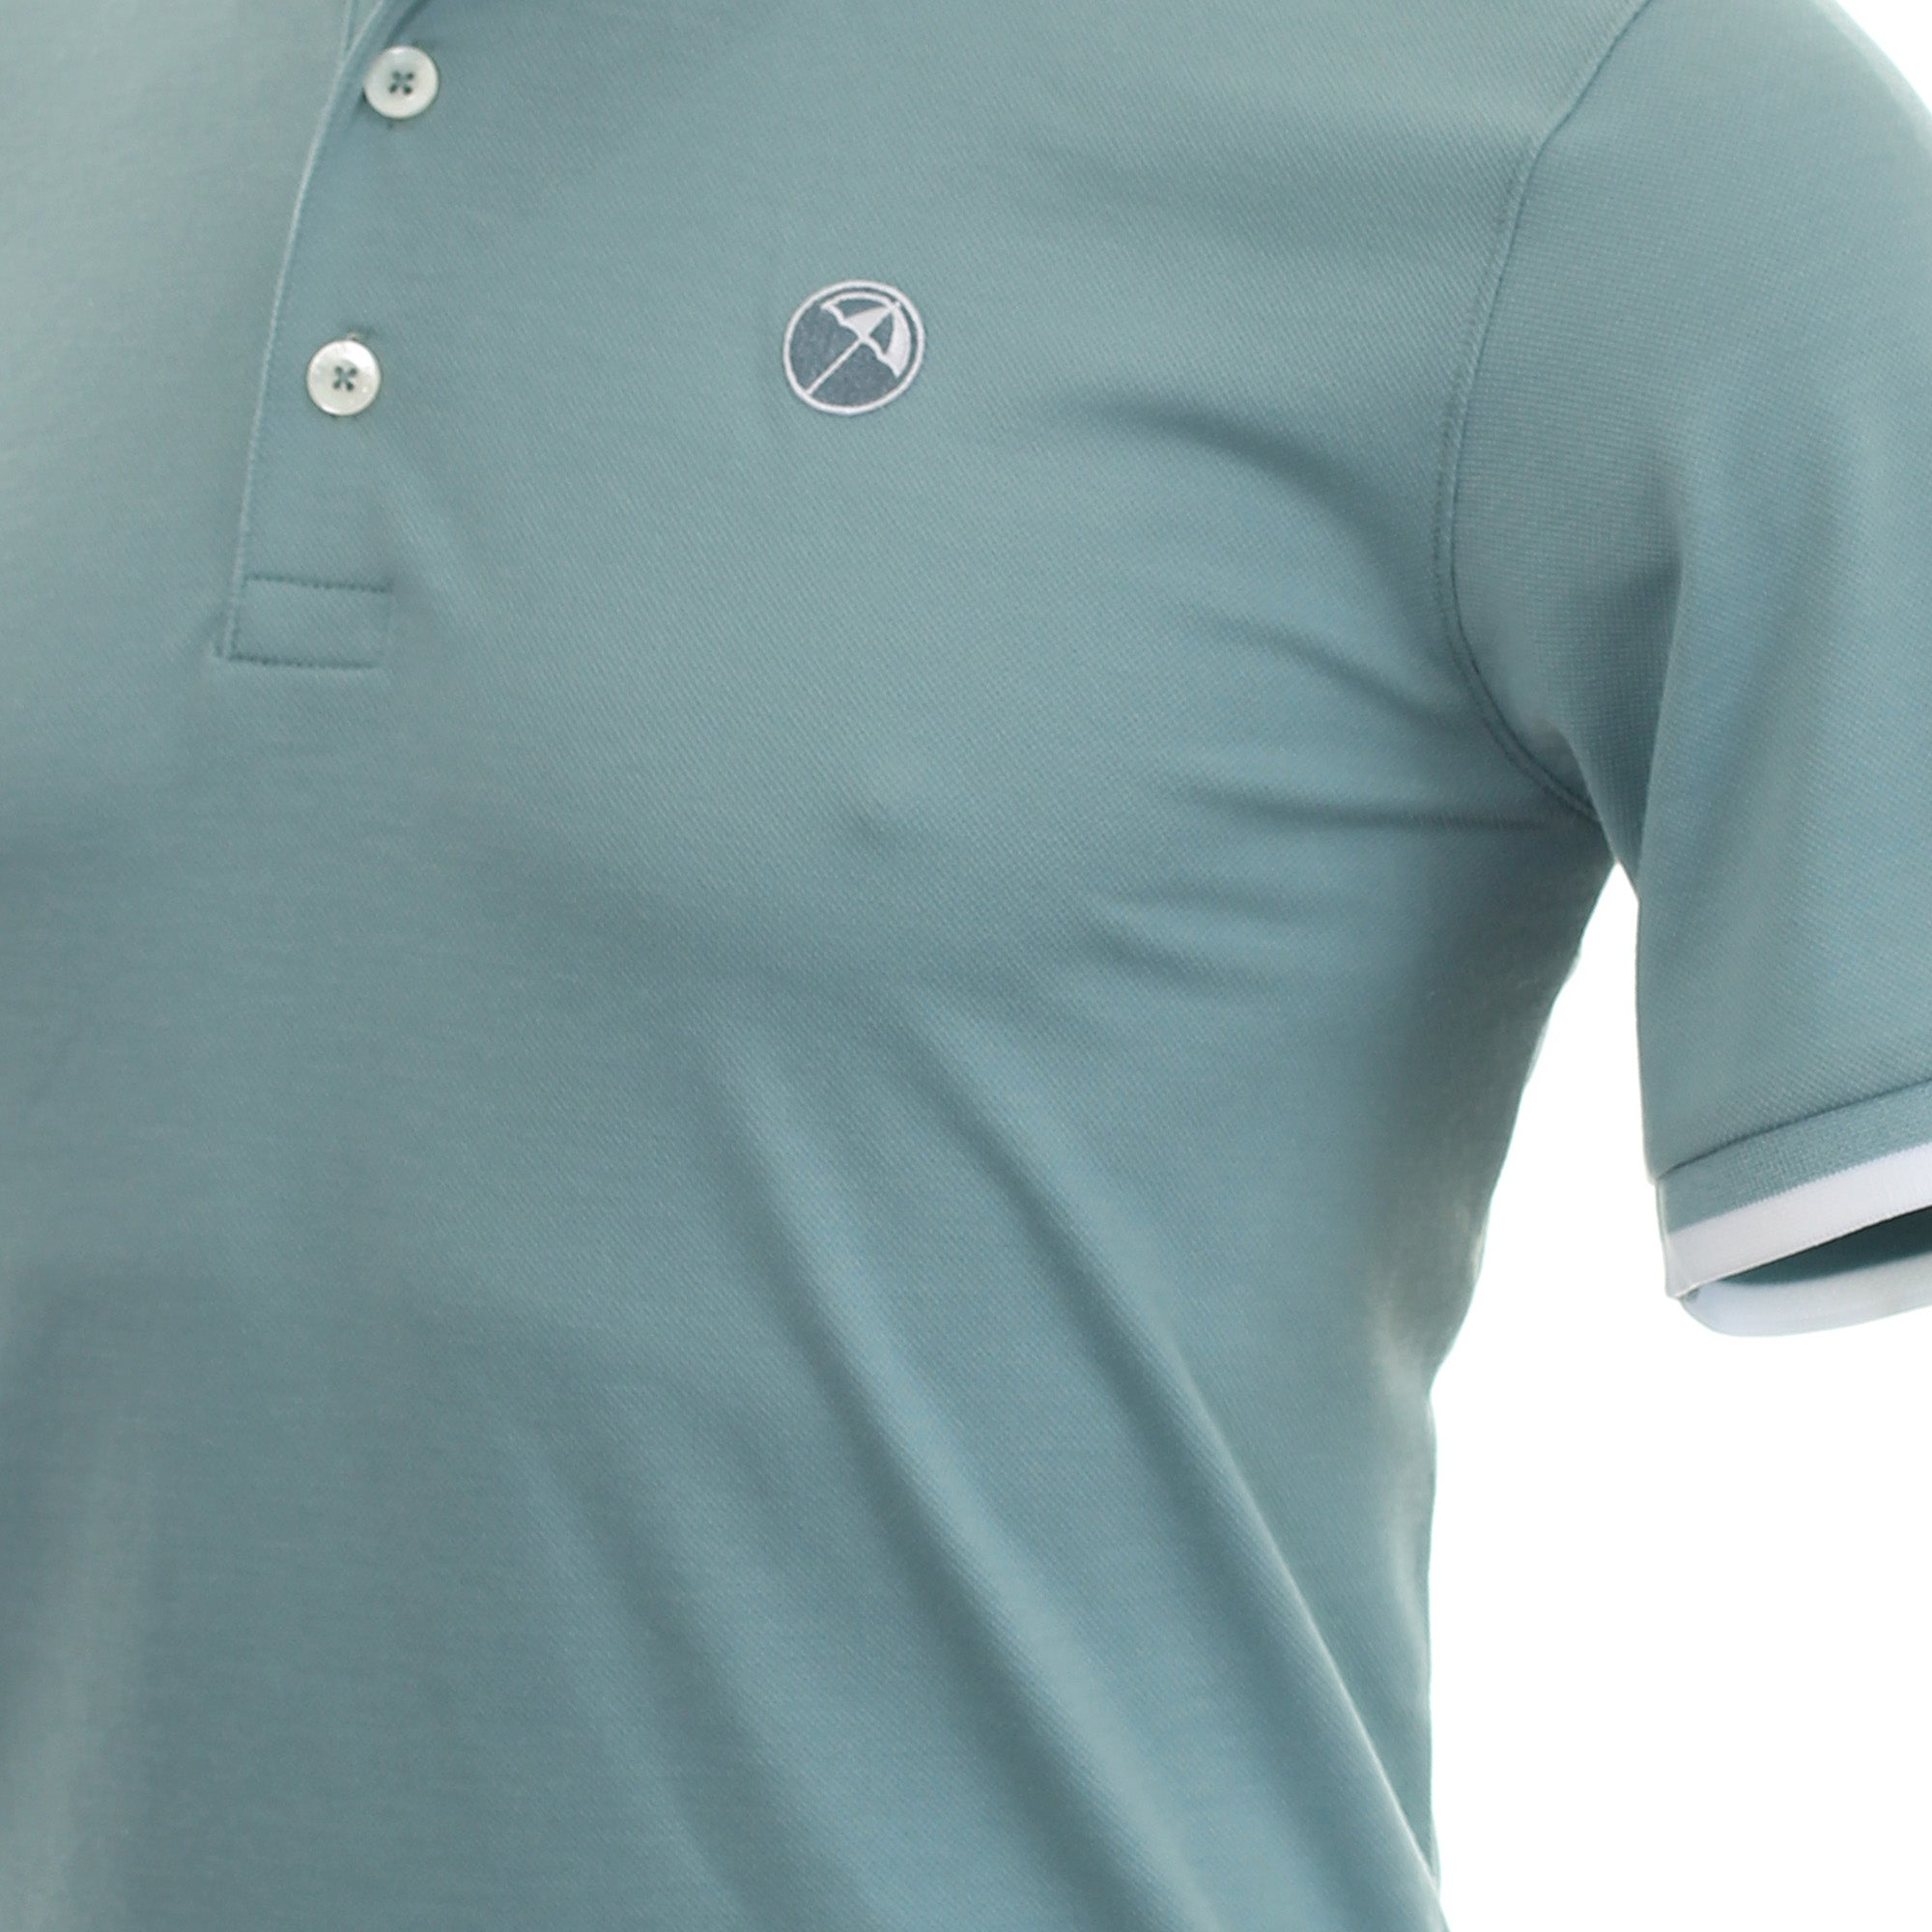 Puma Golf X Arnold Palmer Signature Tipped Shirt